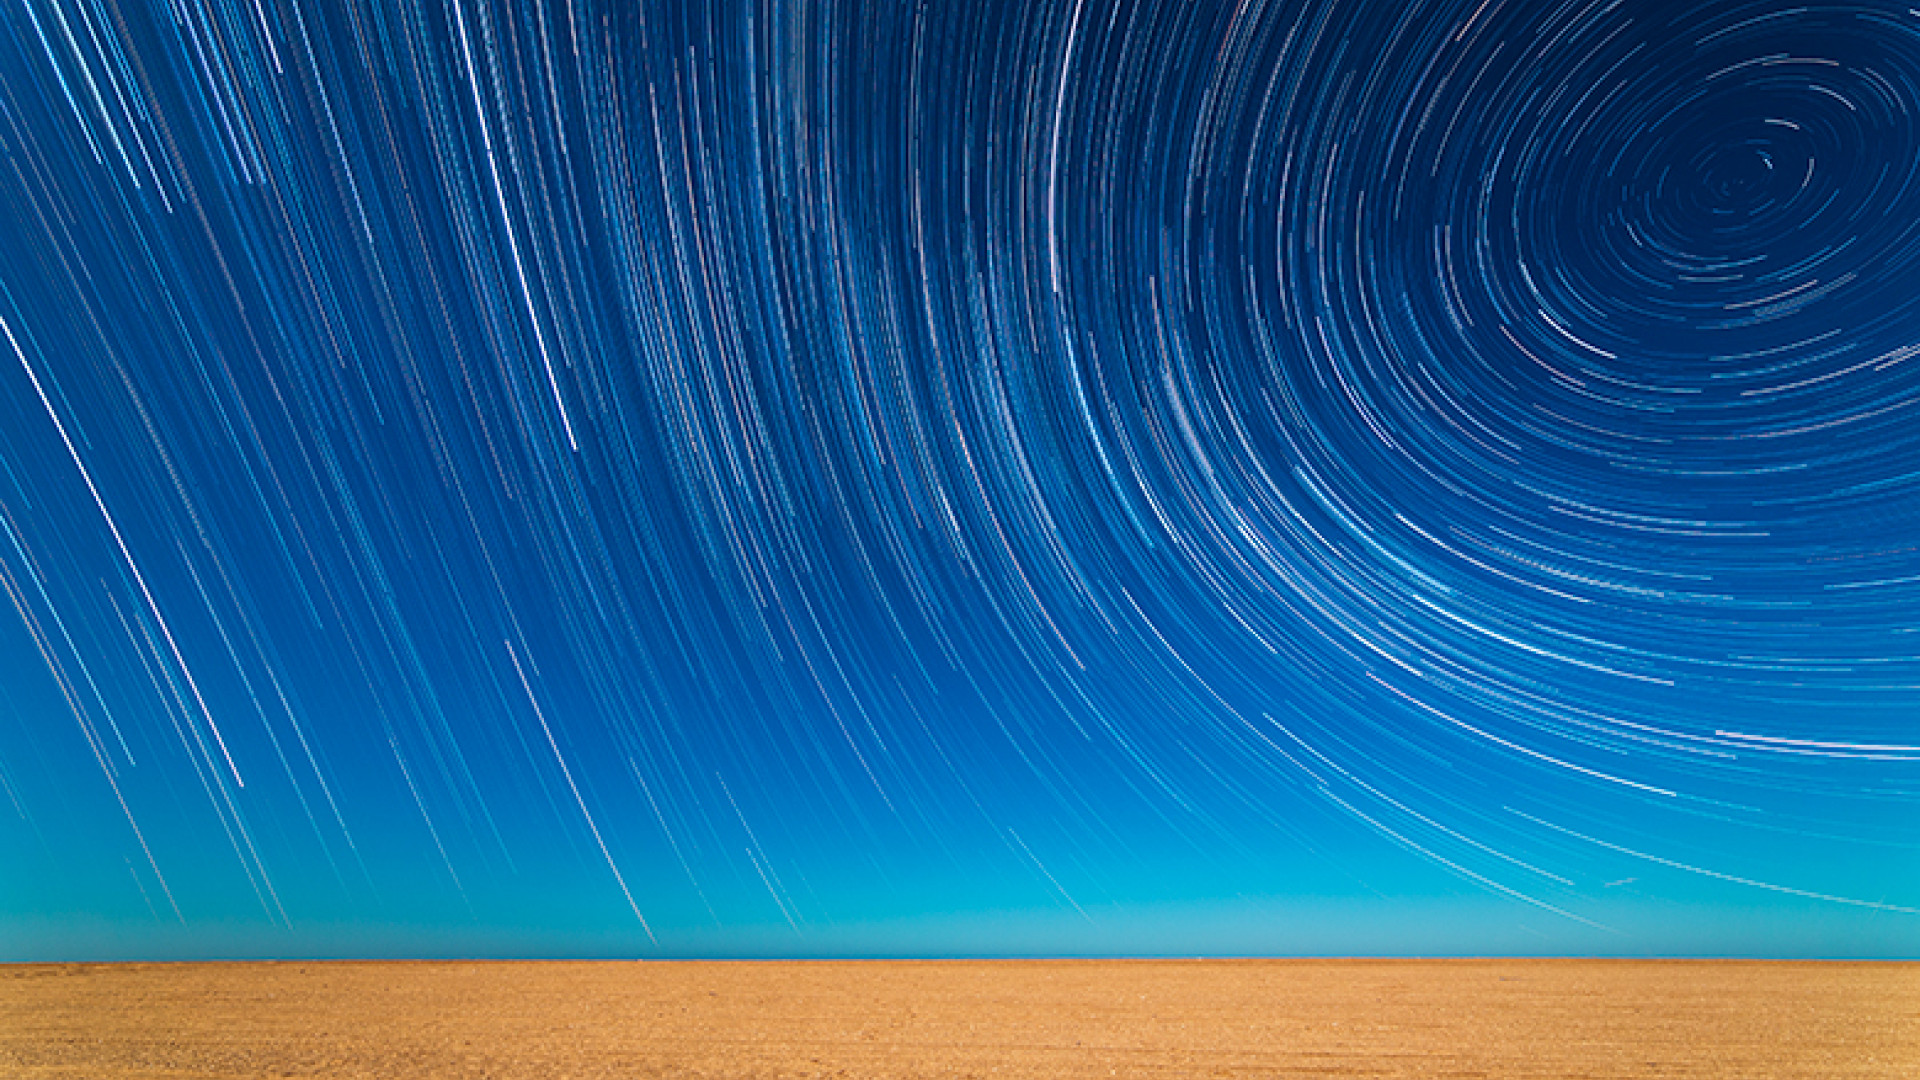 Star-Trails-on-the-Beach-©-Sebastián-Guillermaz